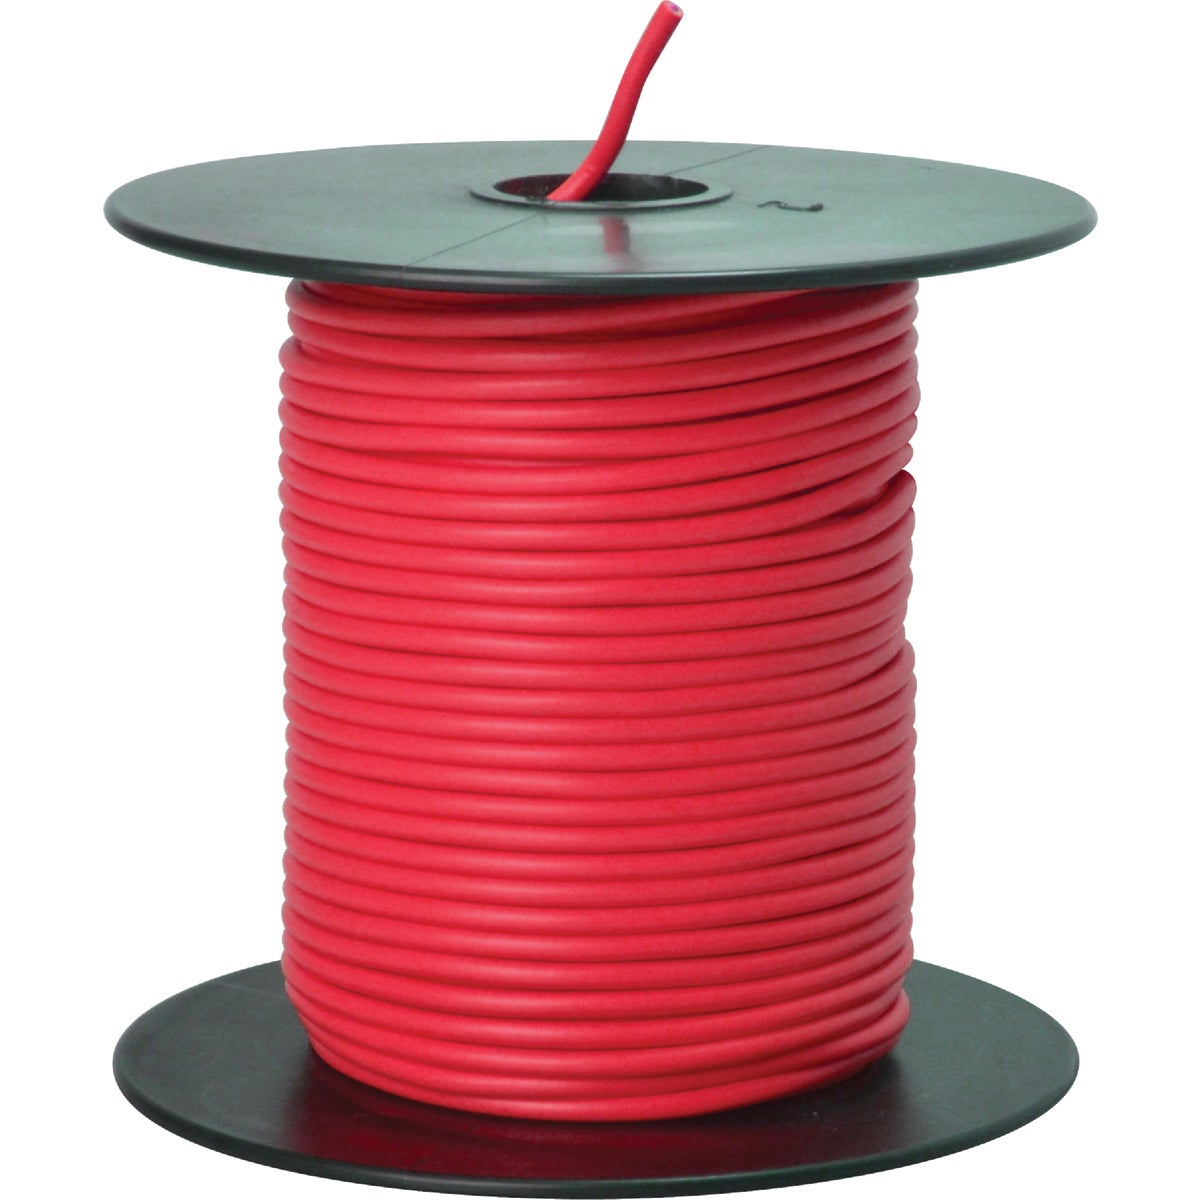 100' 18GA RED AUTO WIRE - 18-100-16 by Woods Wire Coleman